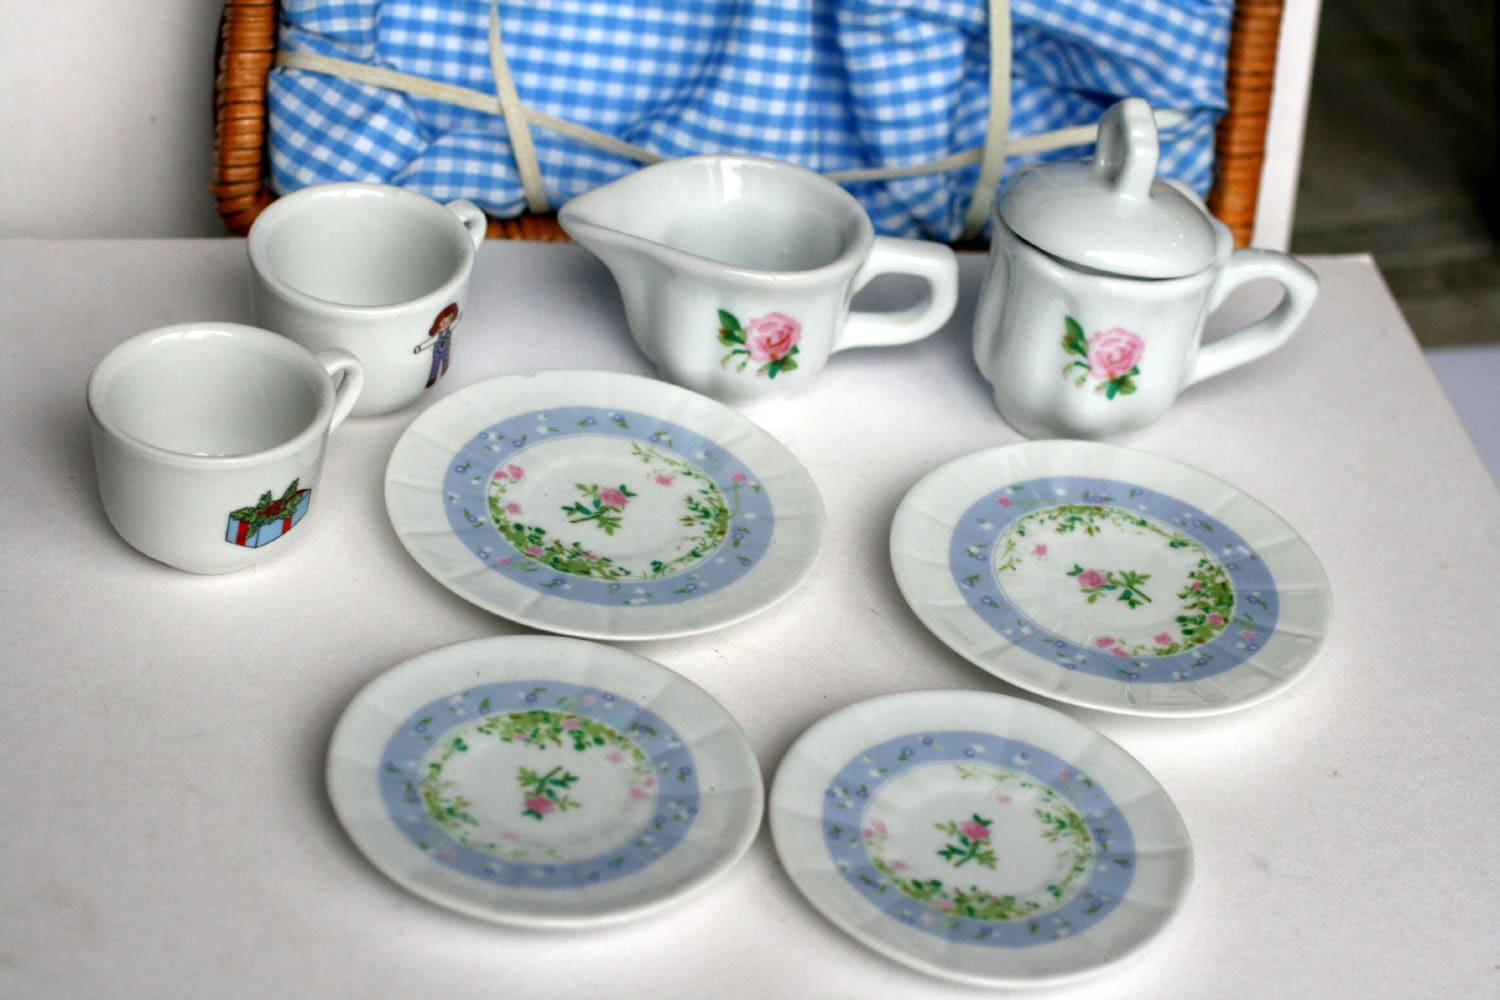 Picnic Basket Dish Set : Vintage childs play picnic basket with china dishes by